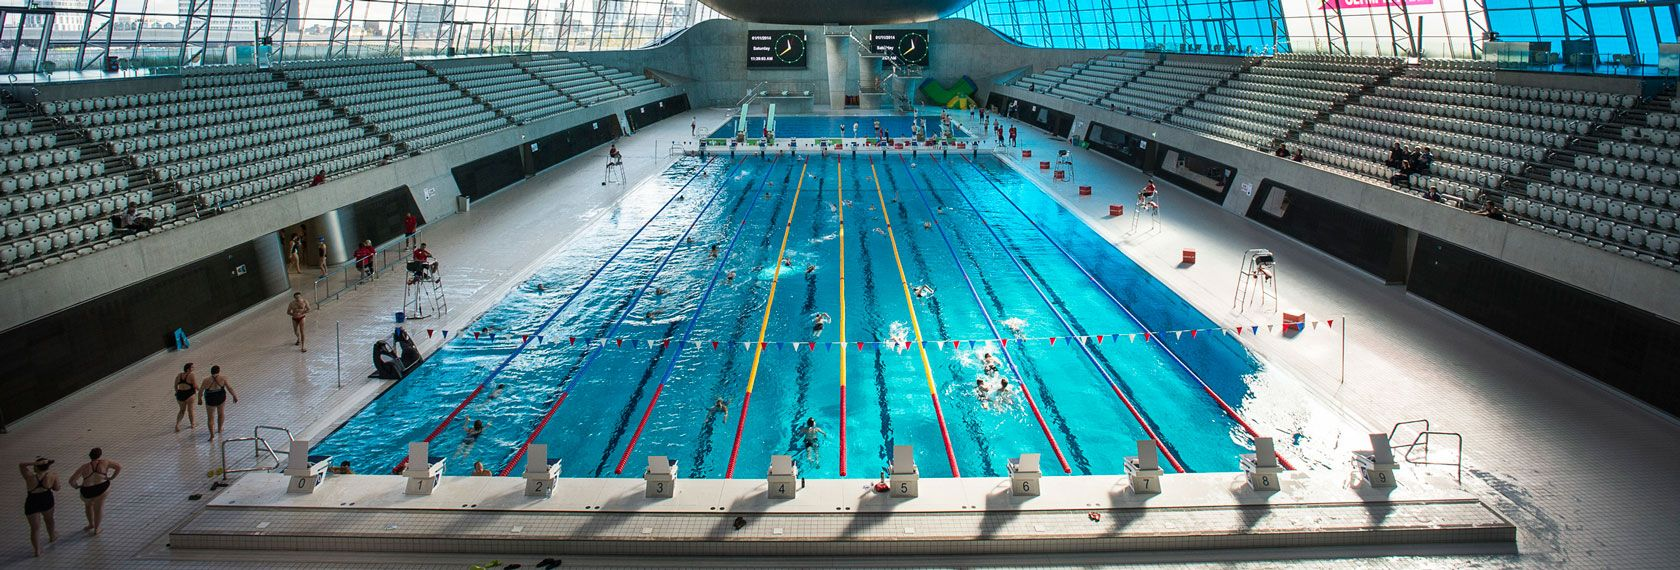 london_aquatics_gv_1680.jpg